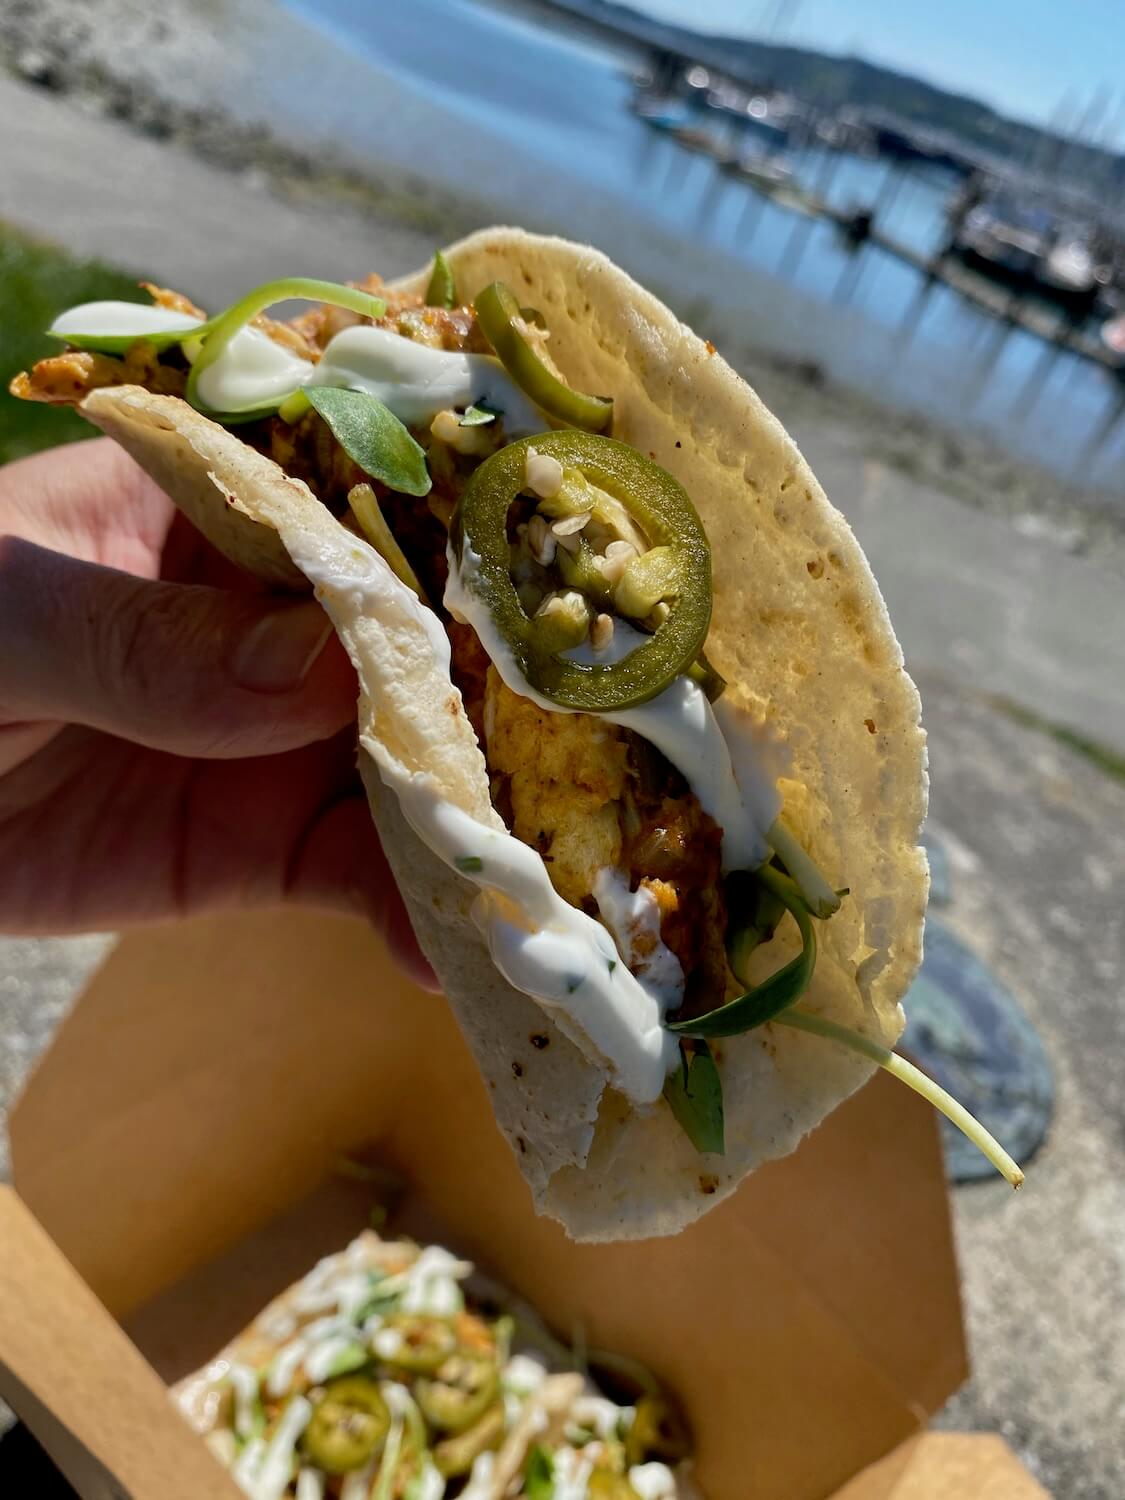 Yummy spicy breakfast tacos from Dad's Diner in Anacortes, Washington serve up some goodness.  This taco is held by a hand and features a ripe jalepeno cross section amongst eggs and white cream sauce.